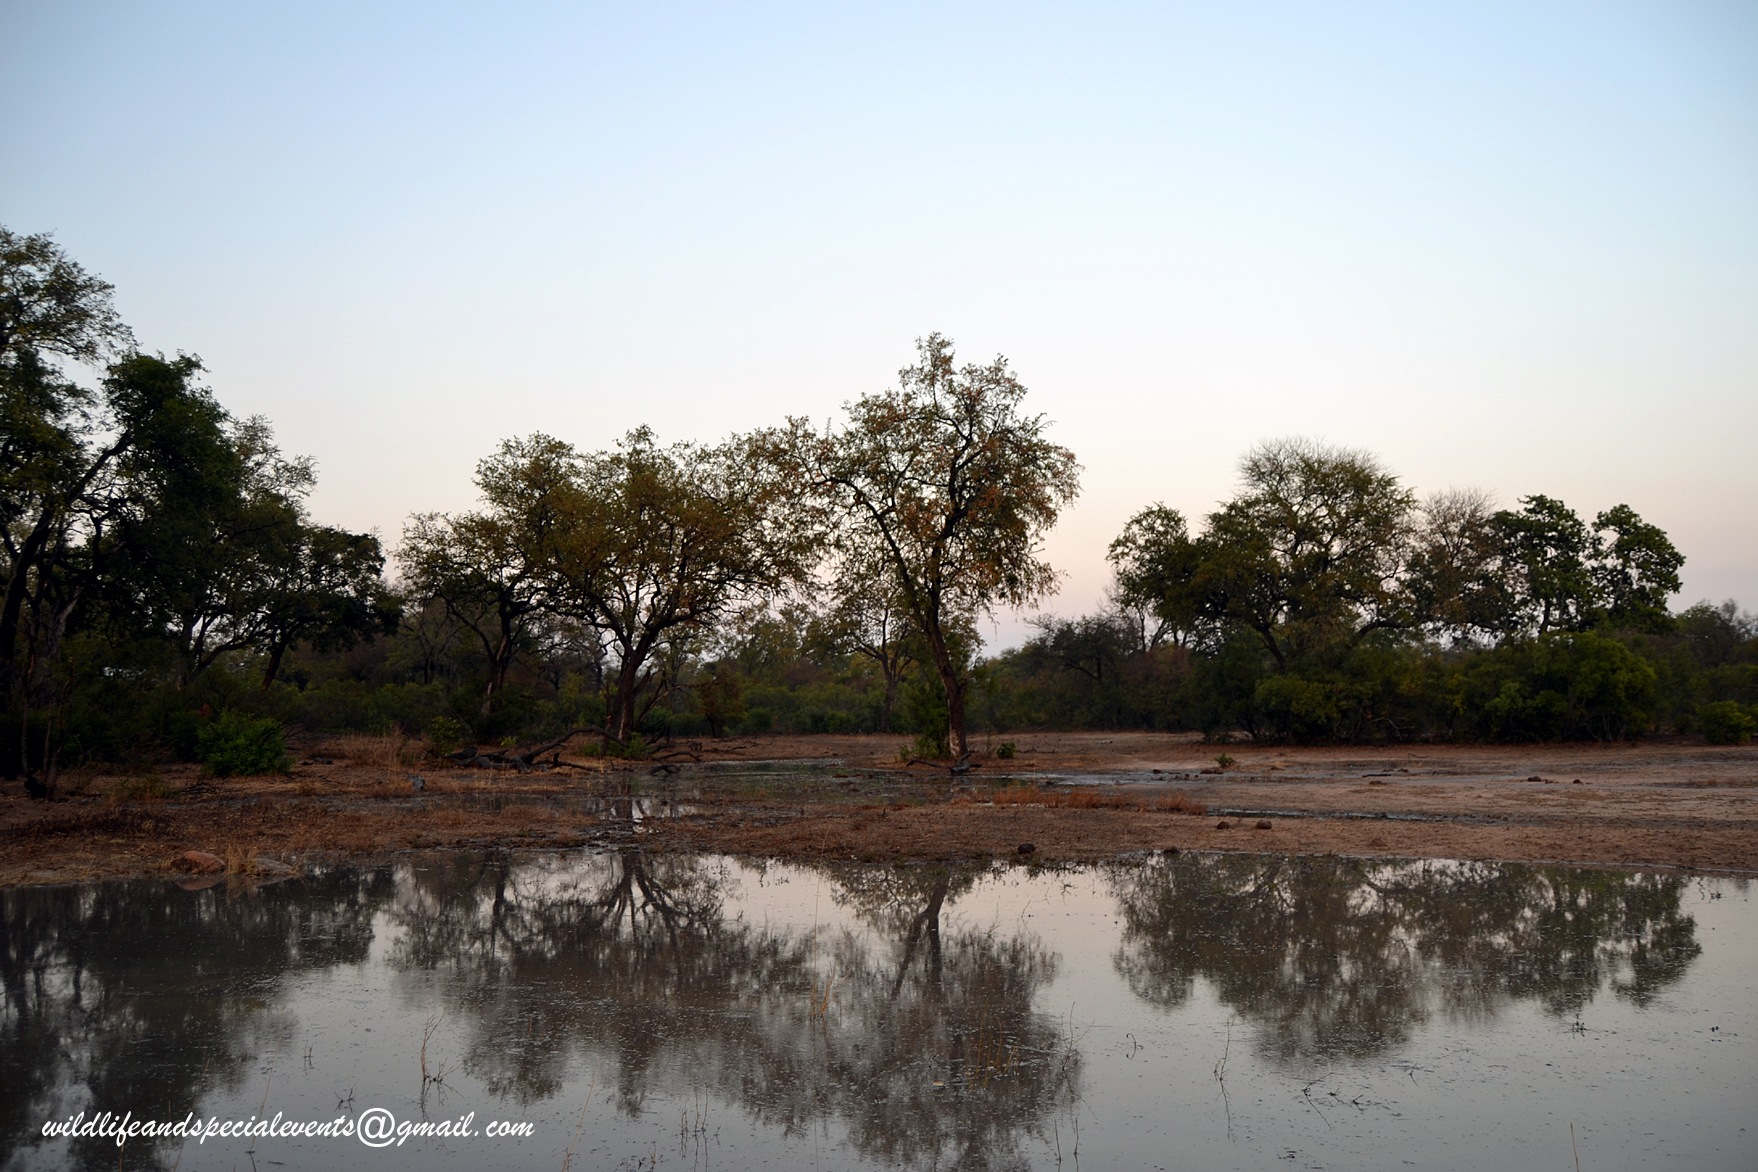 African landscape reflection by oosie